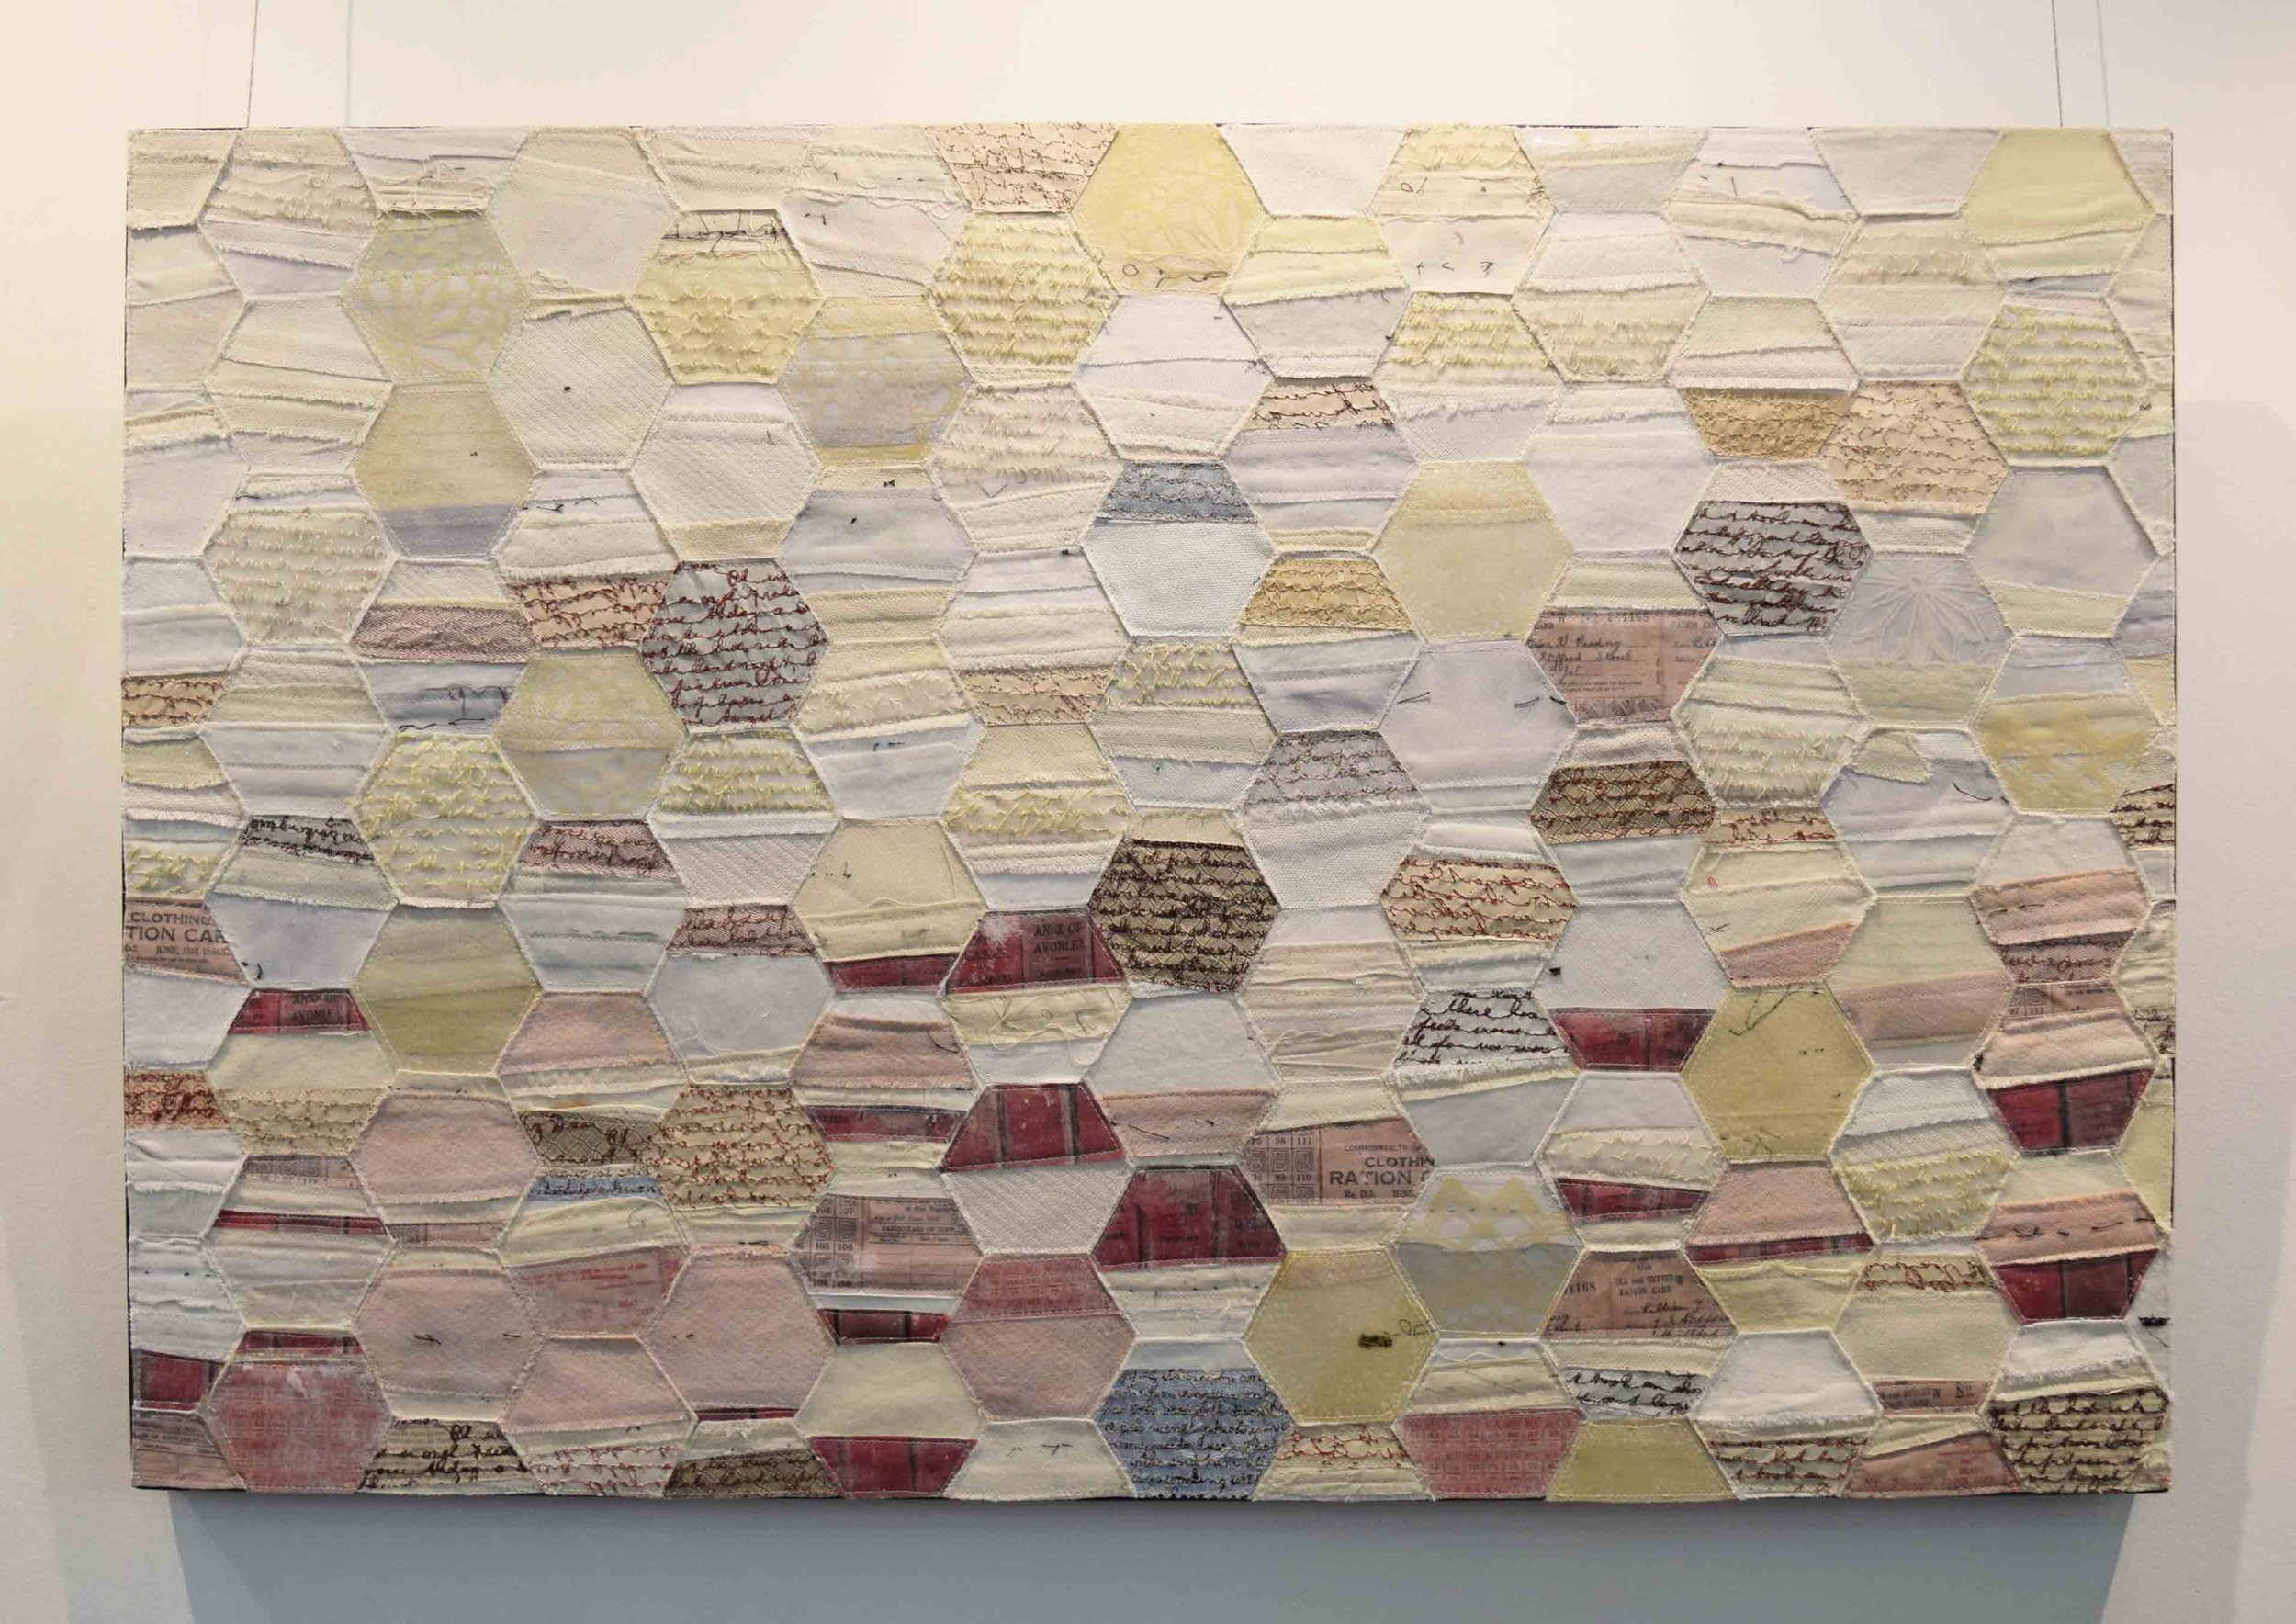 4.  2000 Miles Away 2,  2018, business tie facings, hand woven silk organza, overhead projector sheeting, recycled security envelopes, 61 x 91 cm. $1,500 each